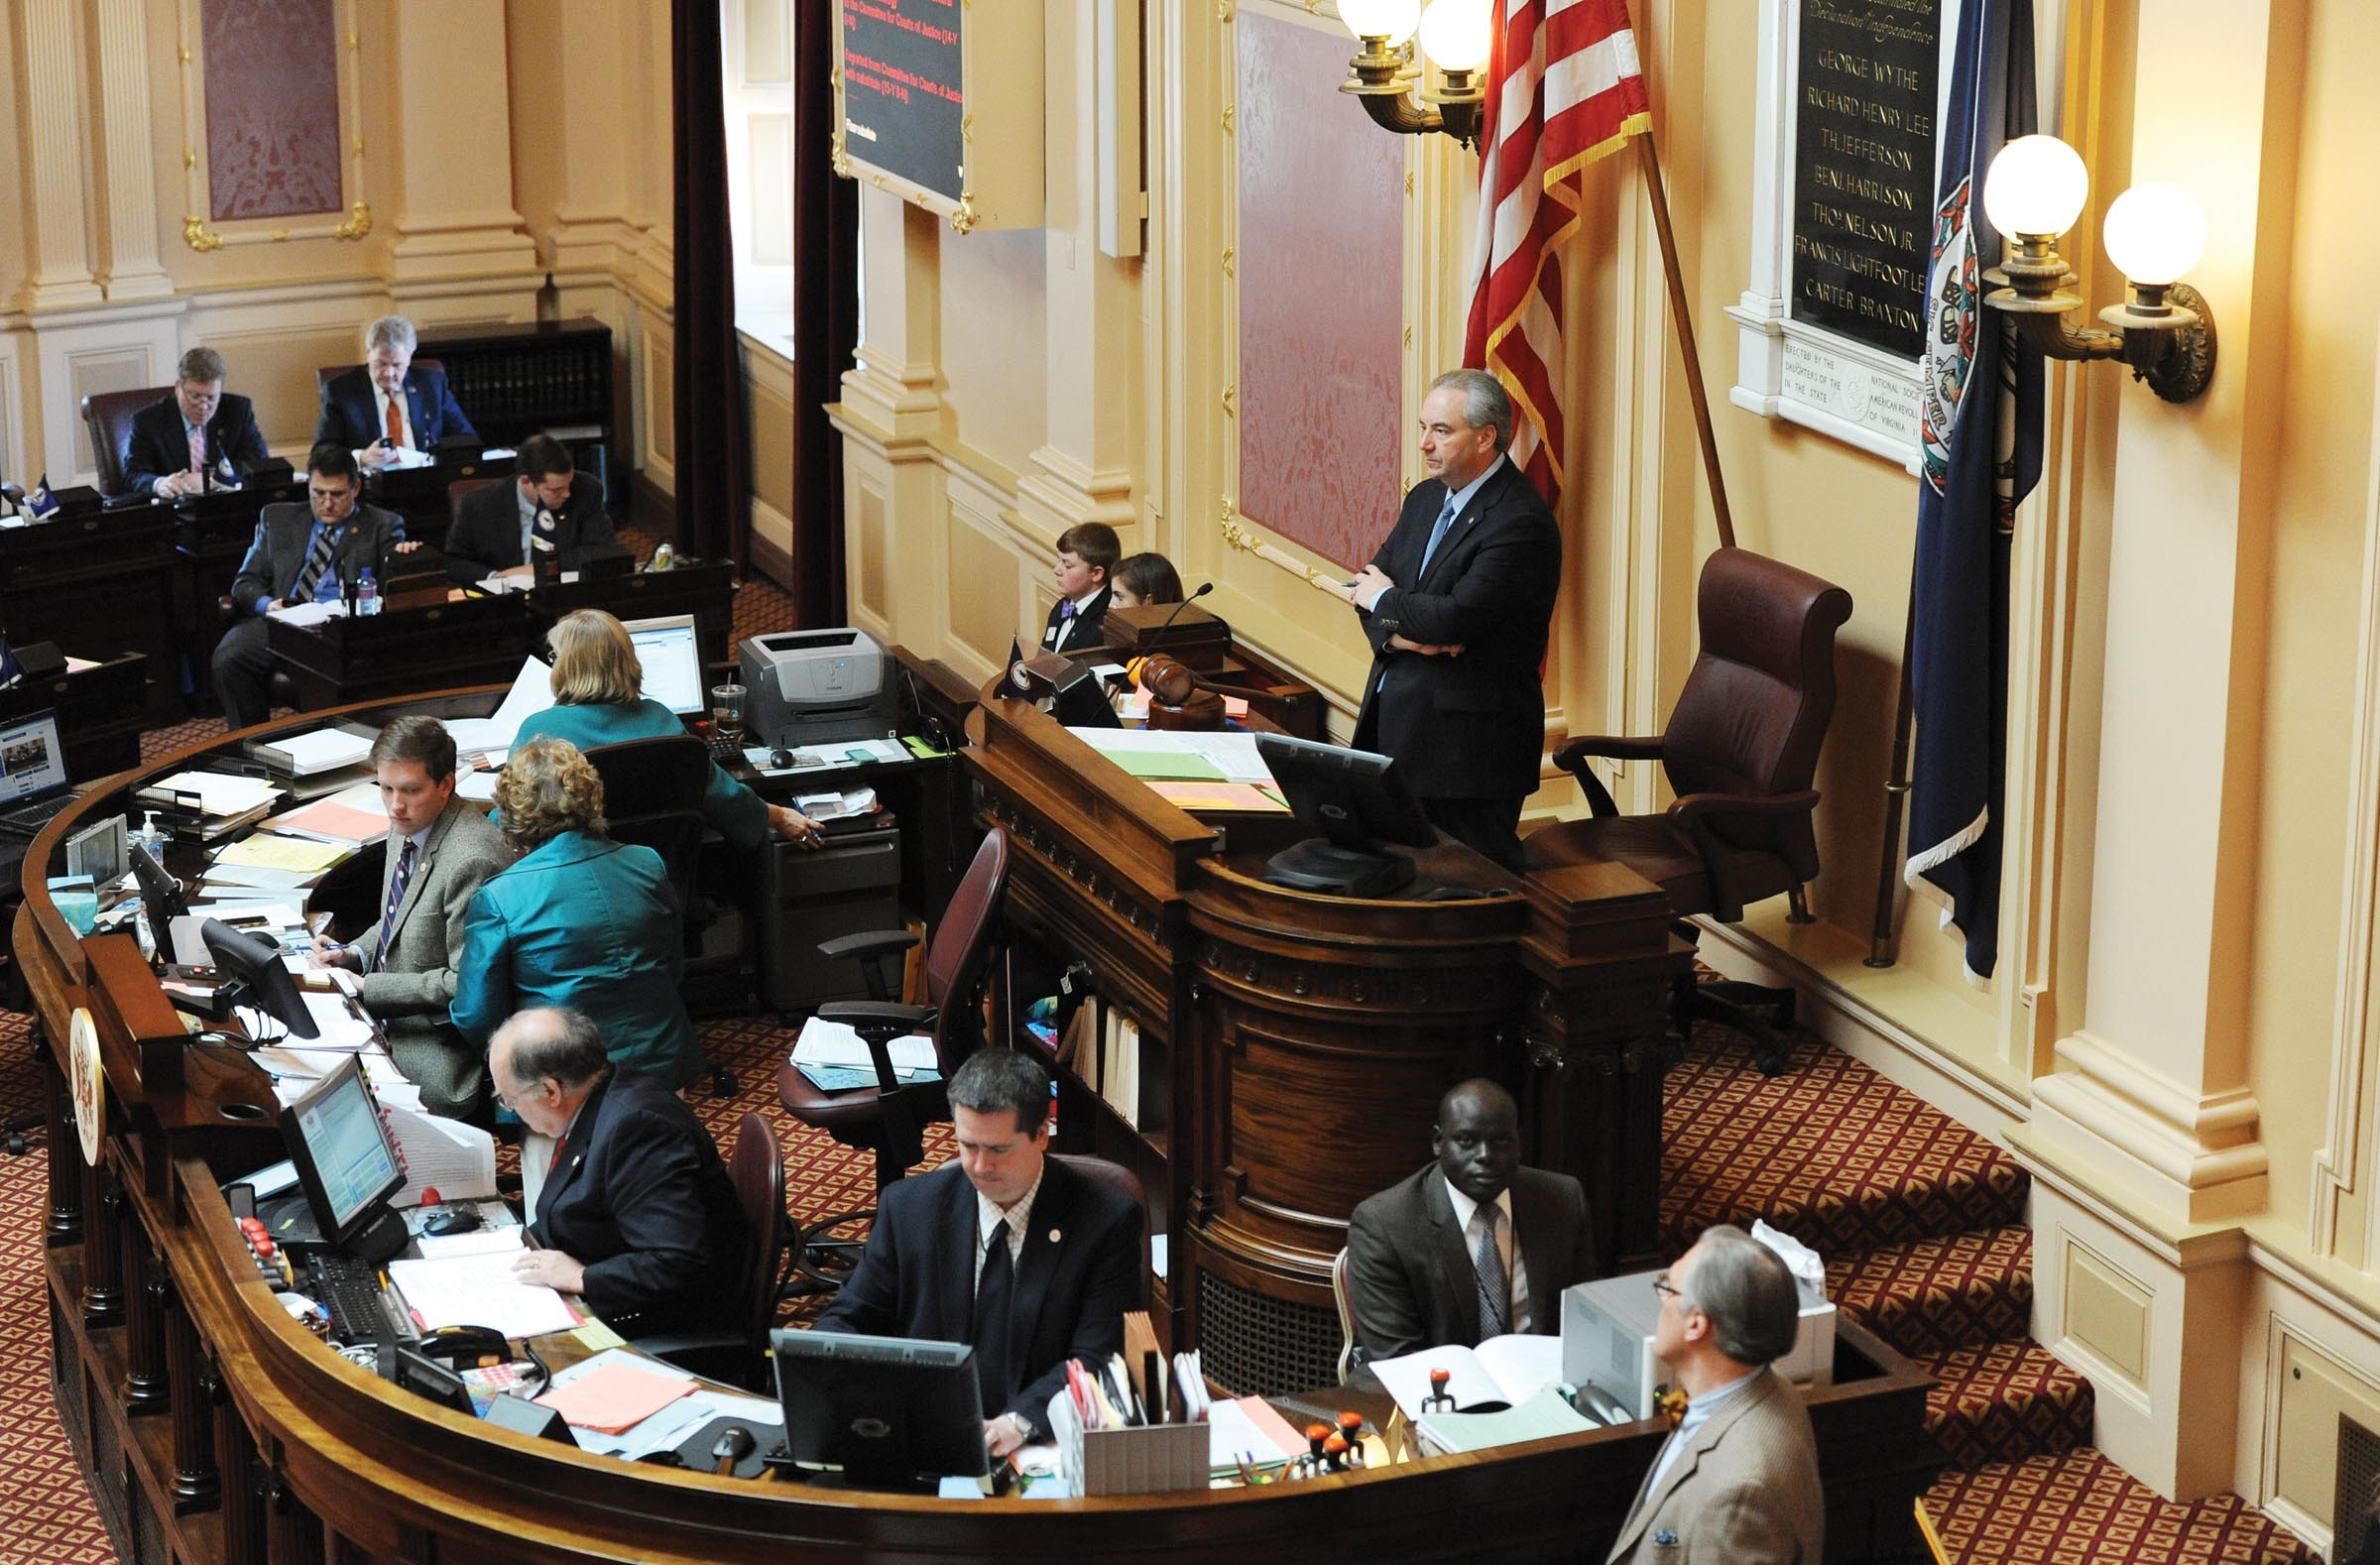 As lieutenant governor, Bill Bolling presides over the state Senate and casts tie-breaking votes in the body, which is split 20-20 between Republicans and Democrats. - SCOTT ELMQUIST